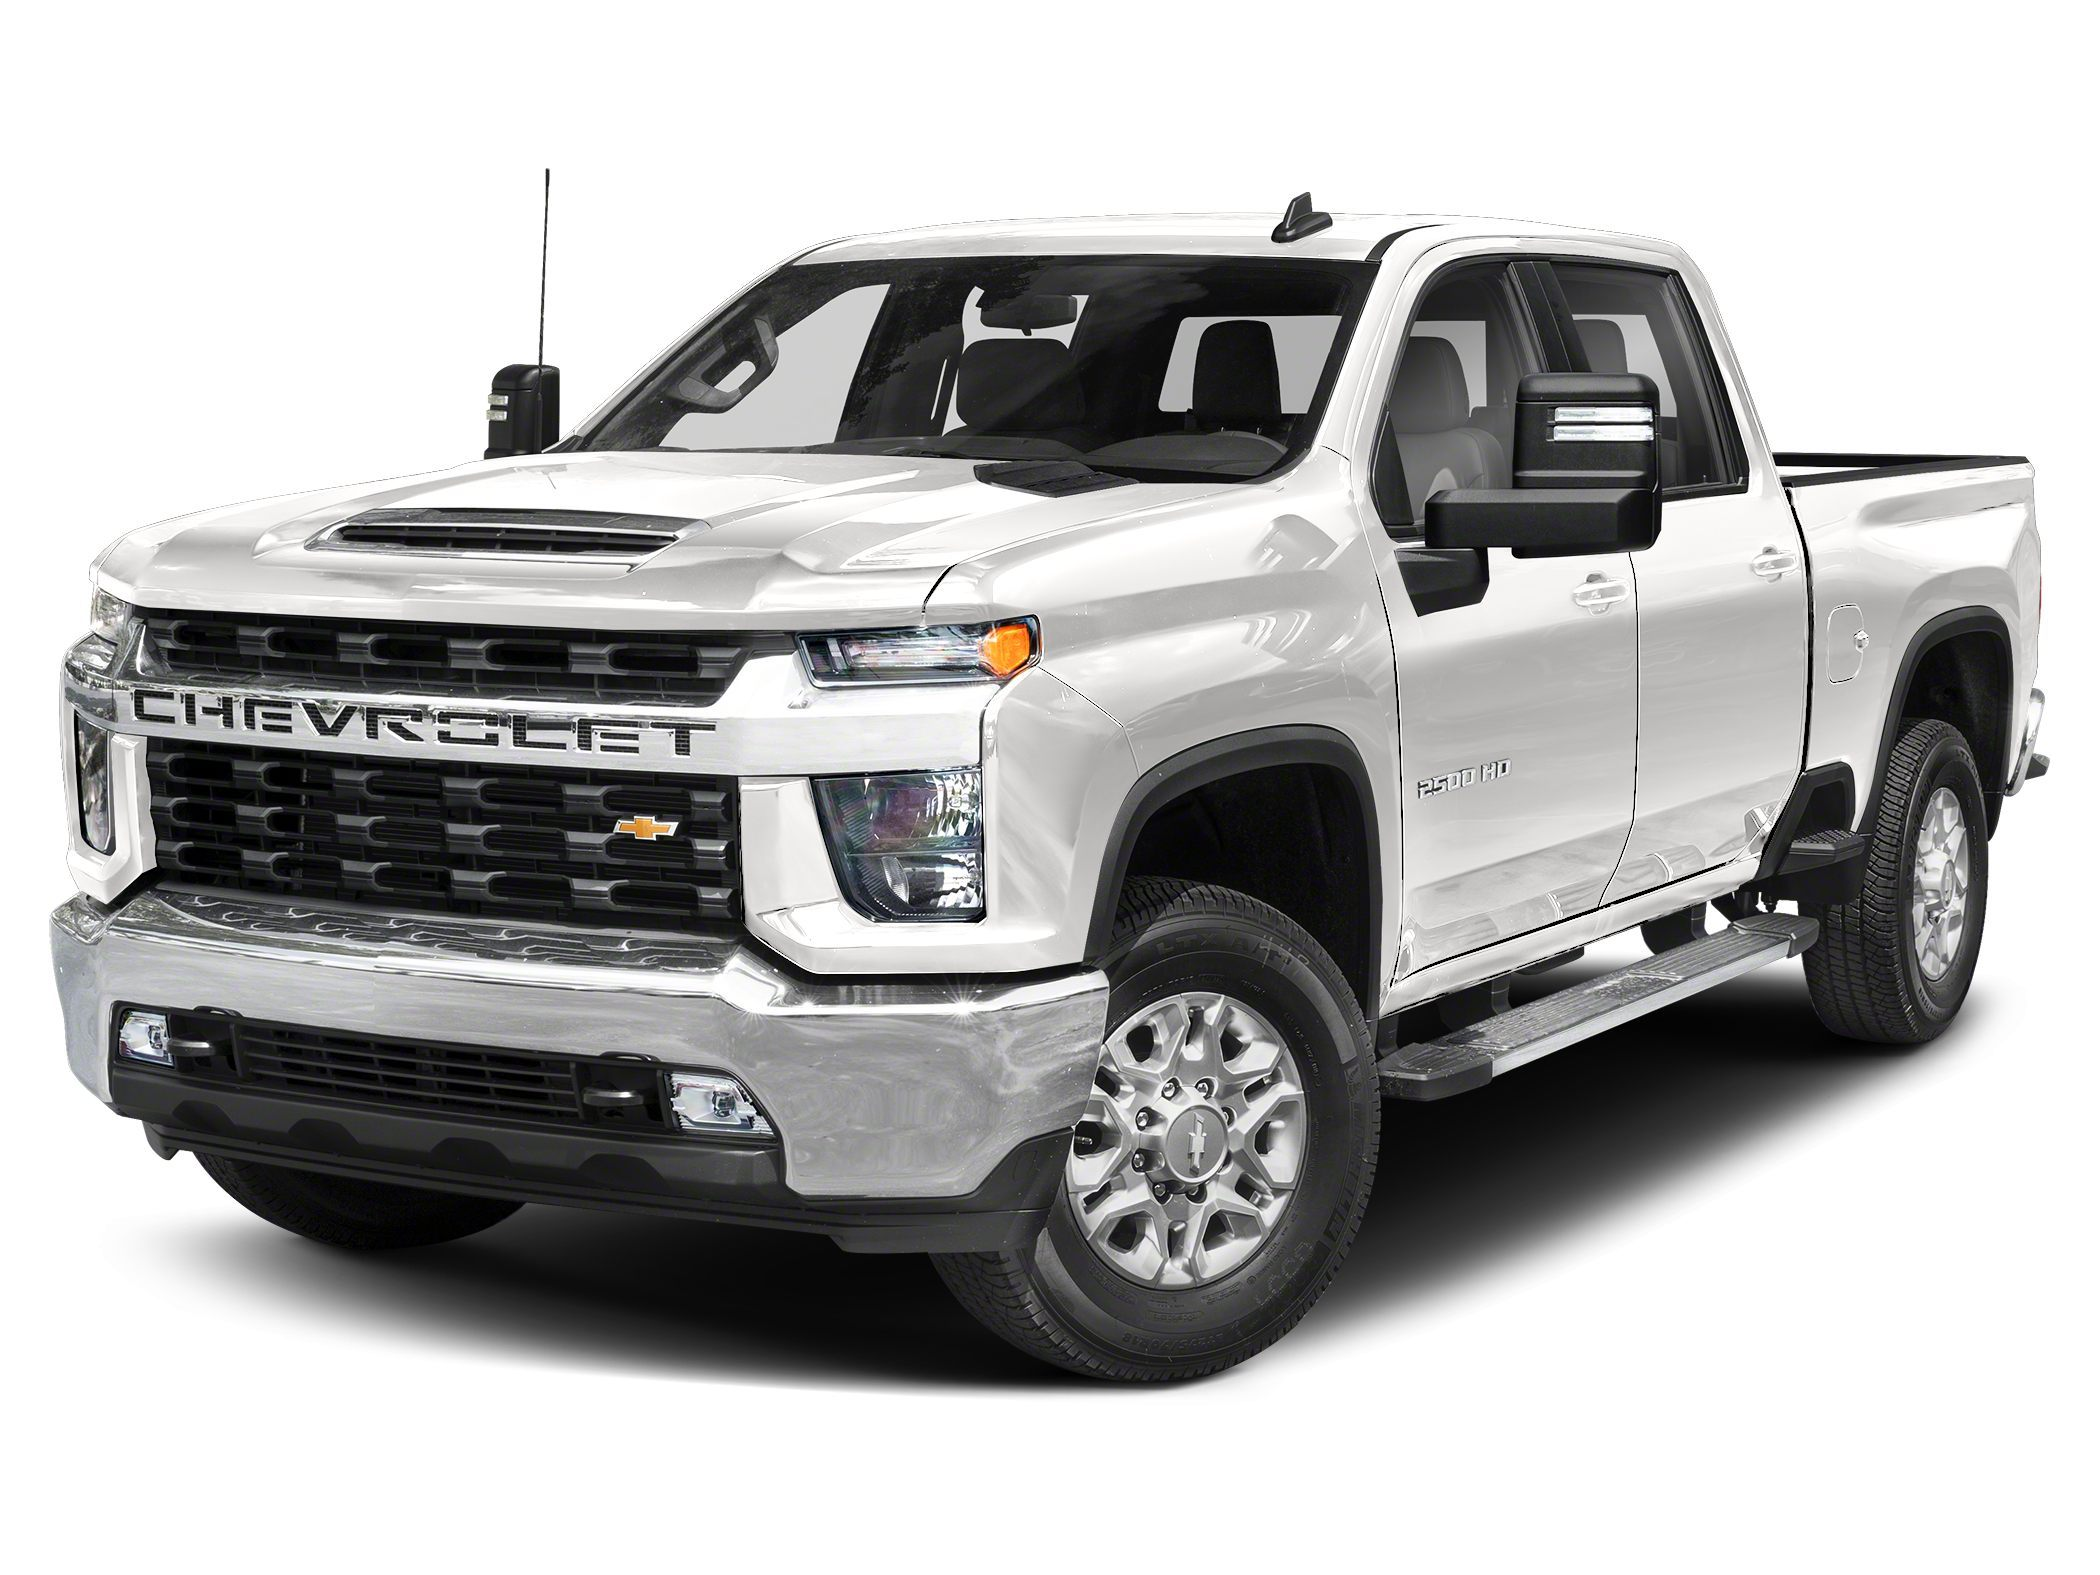 New 2021 Chevrolet Silverado 2500 Hd For Sale At Steve Schmitt Inc Vin 1gc4ymeyxmf219941